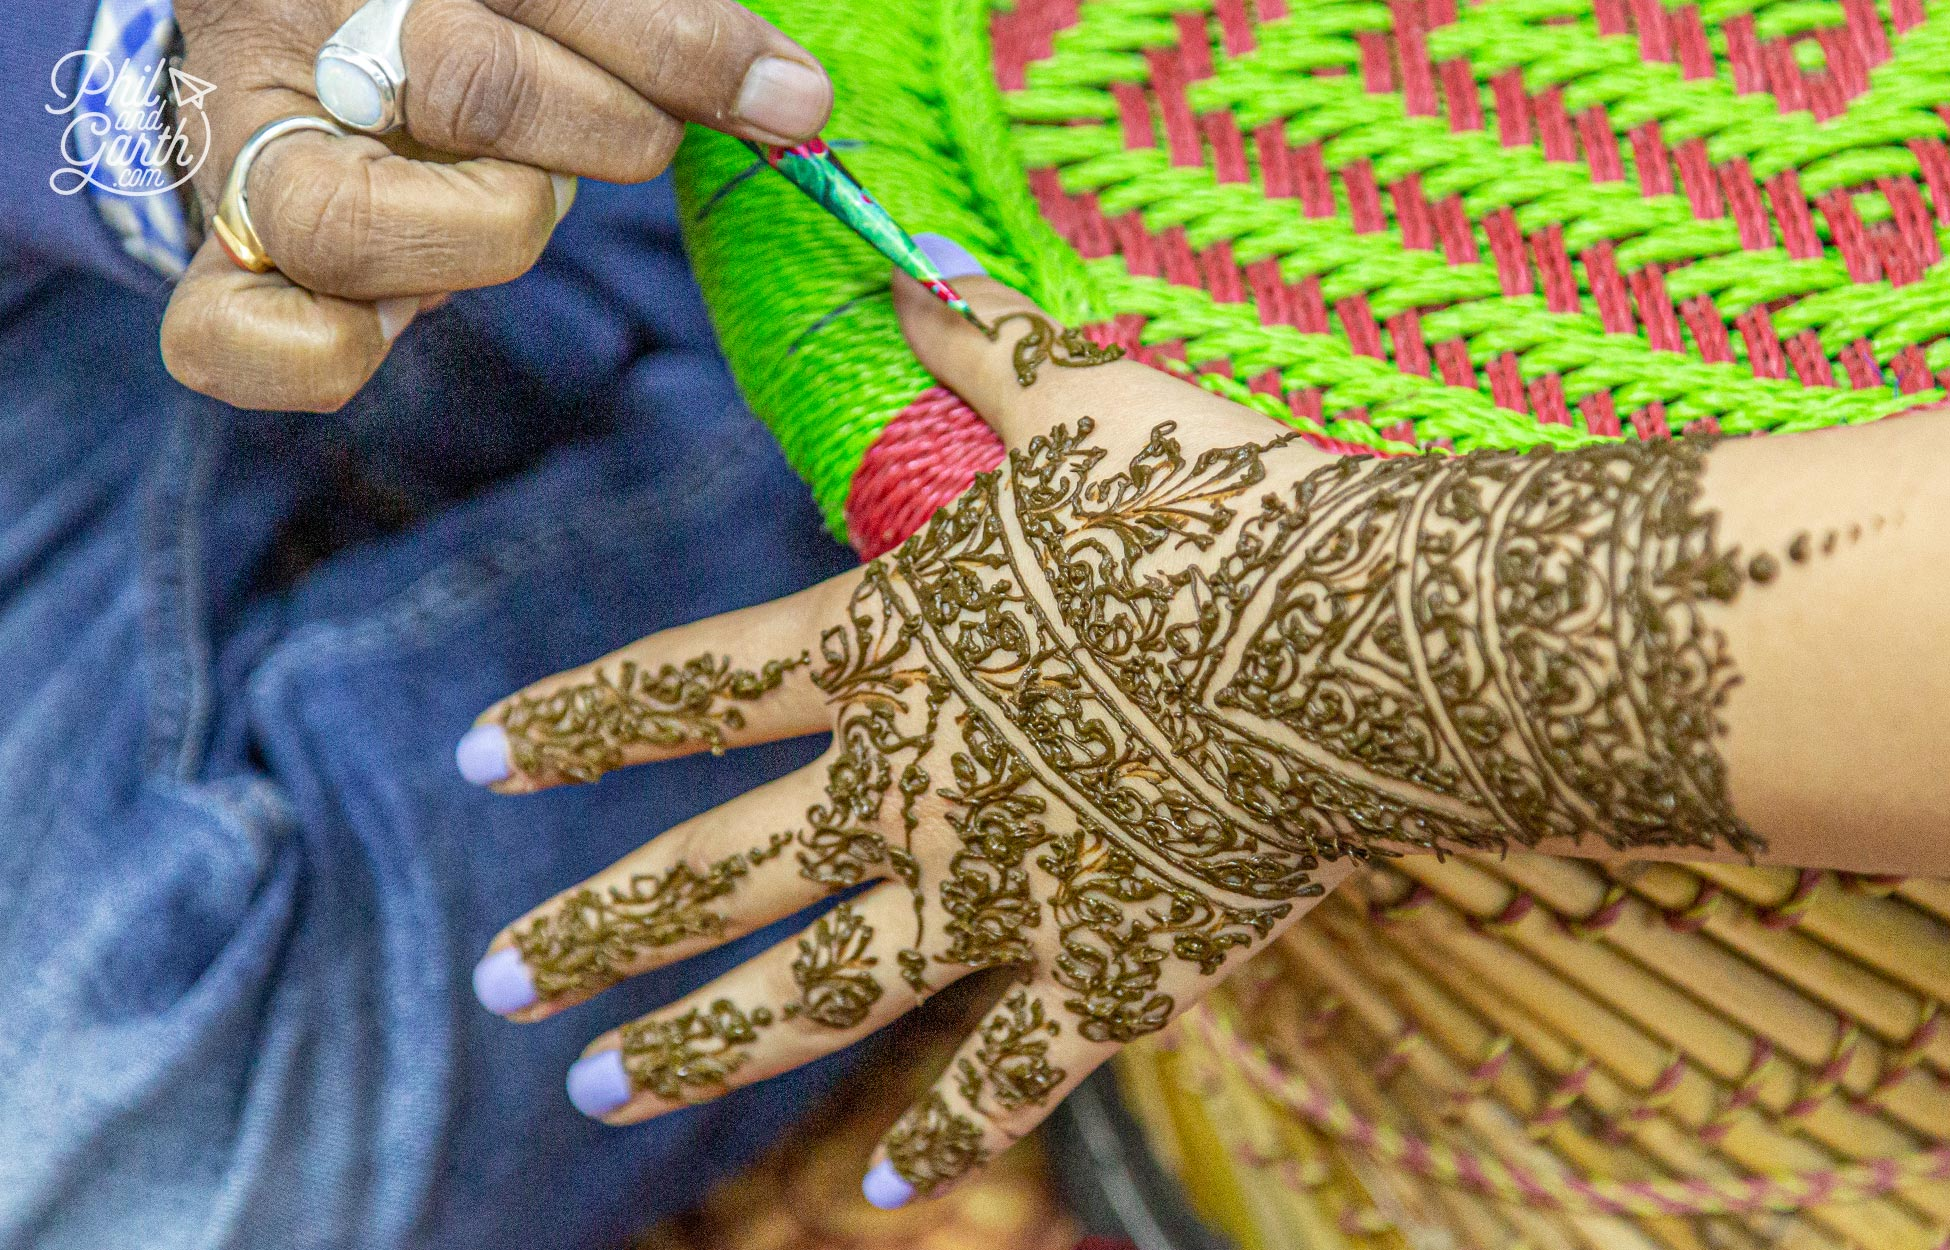 Lessons in henna tattoos